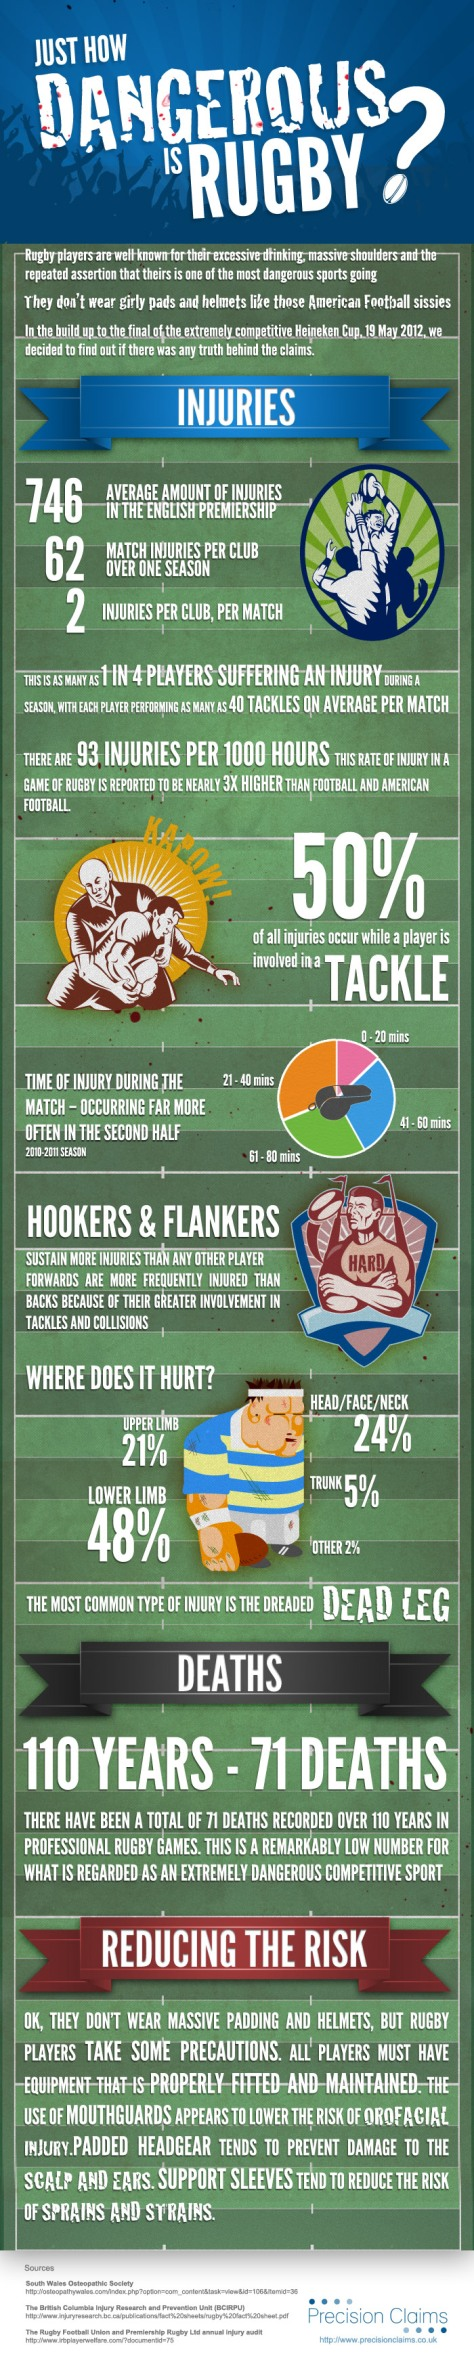 Just How Dangerous Is Rugby